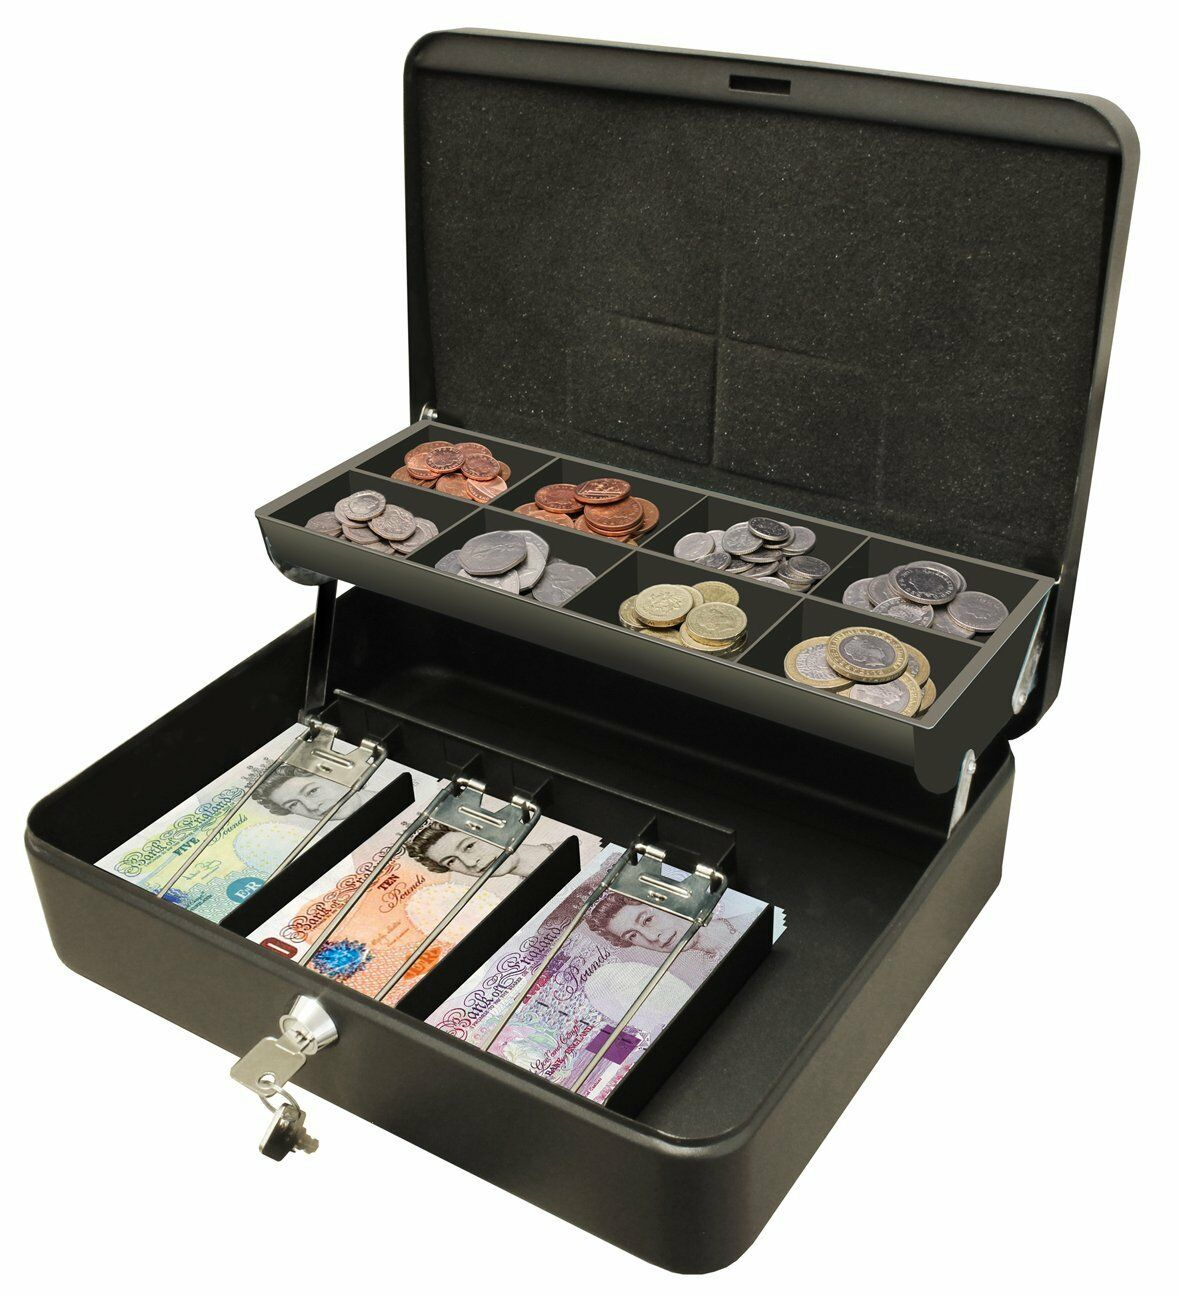 12 petty cash box black metal security money safe tray holder key